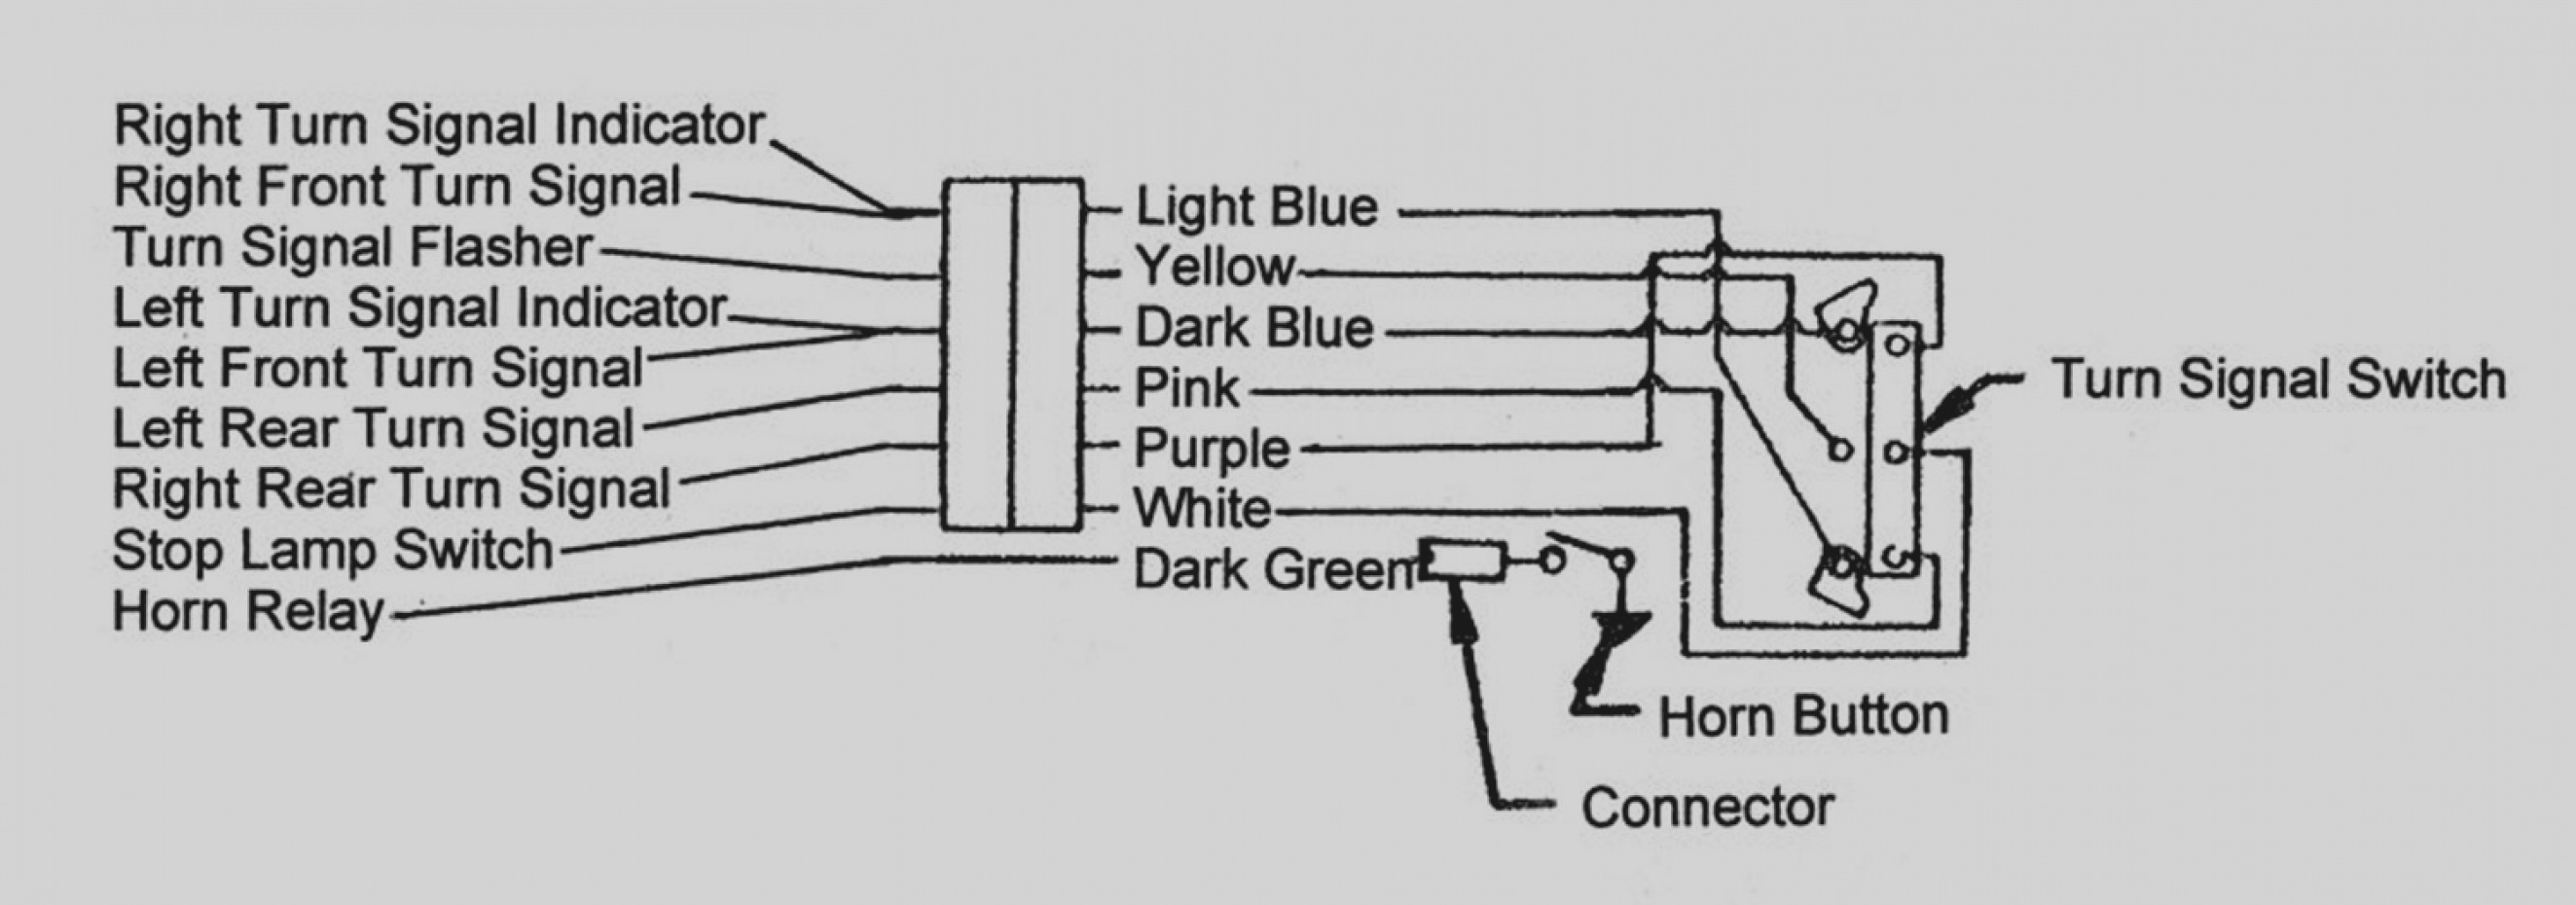 77 chevy turn signal switch wiring wiring diagrams rh jasipix de